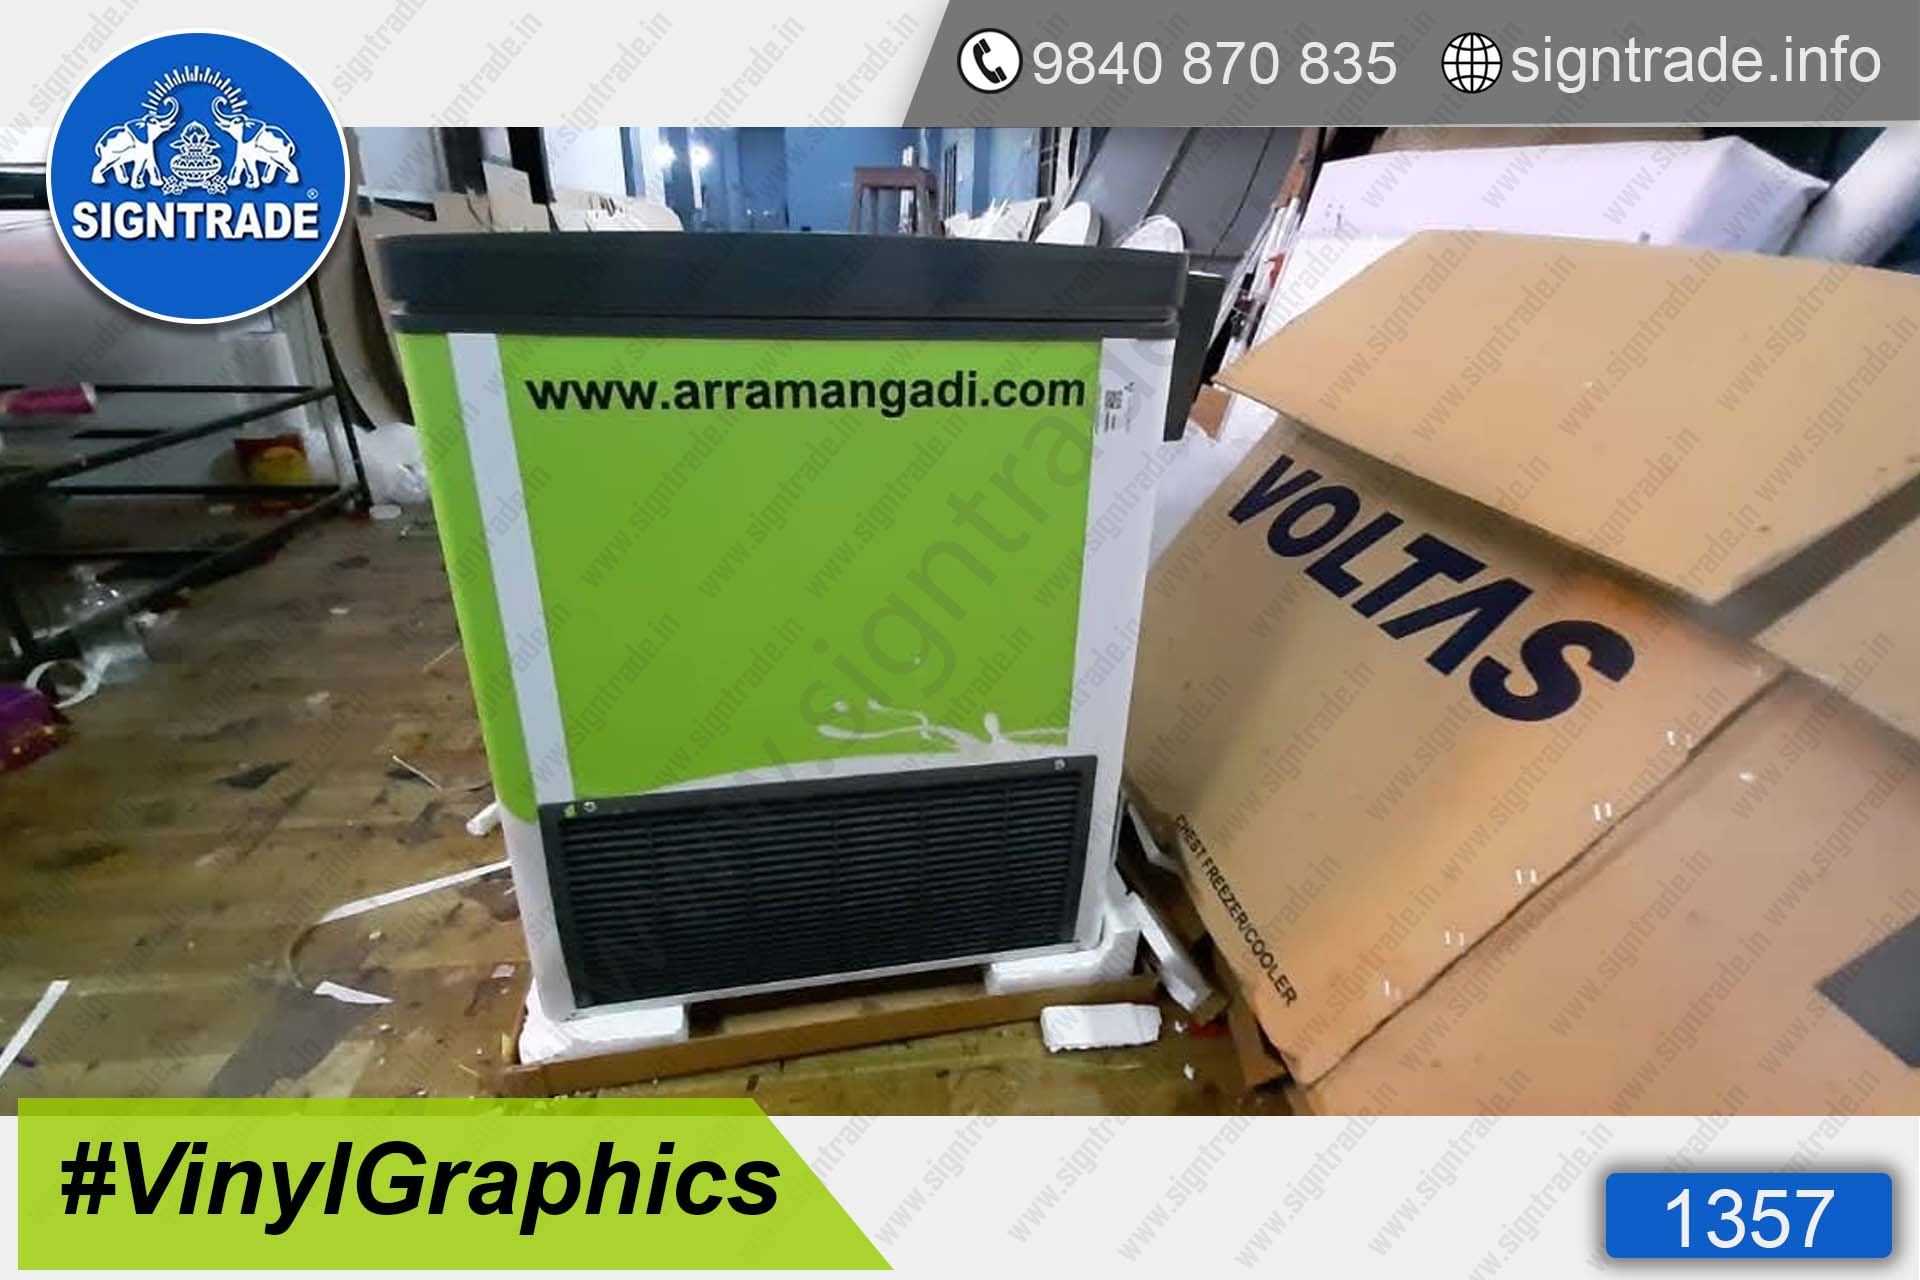 Arram Farms - Natural Cow Milk - Chennai - SIGNTRADE - Wall Graphics and Wall Wrapping Service in Chennai